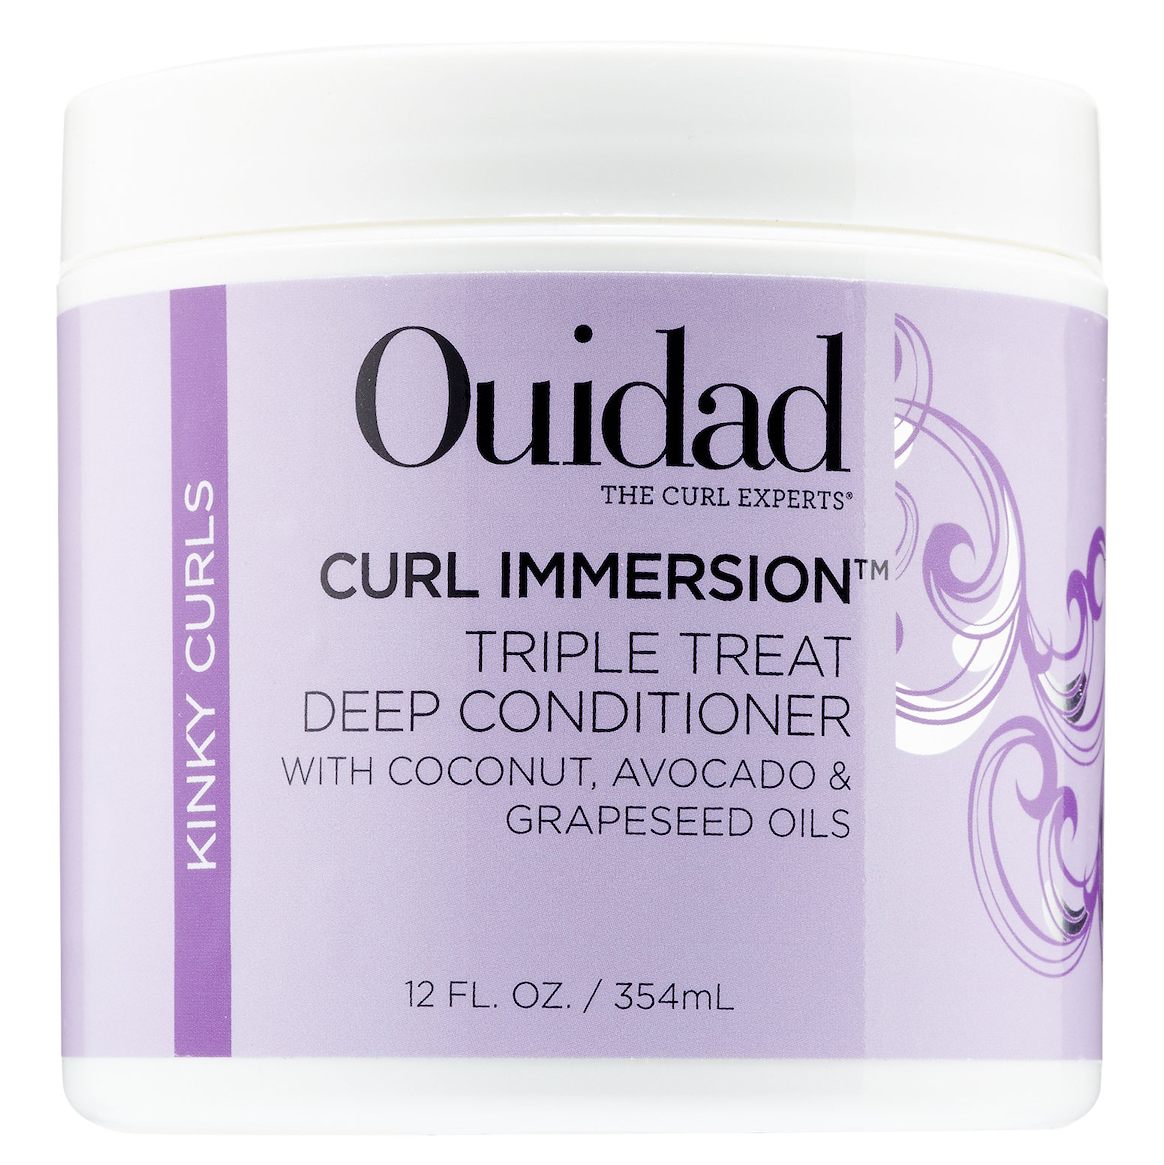 Winter Beauty Treatments: Ouidad Curl Immersion Triple Treat Deep Conditioner